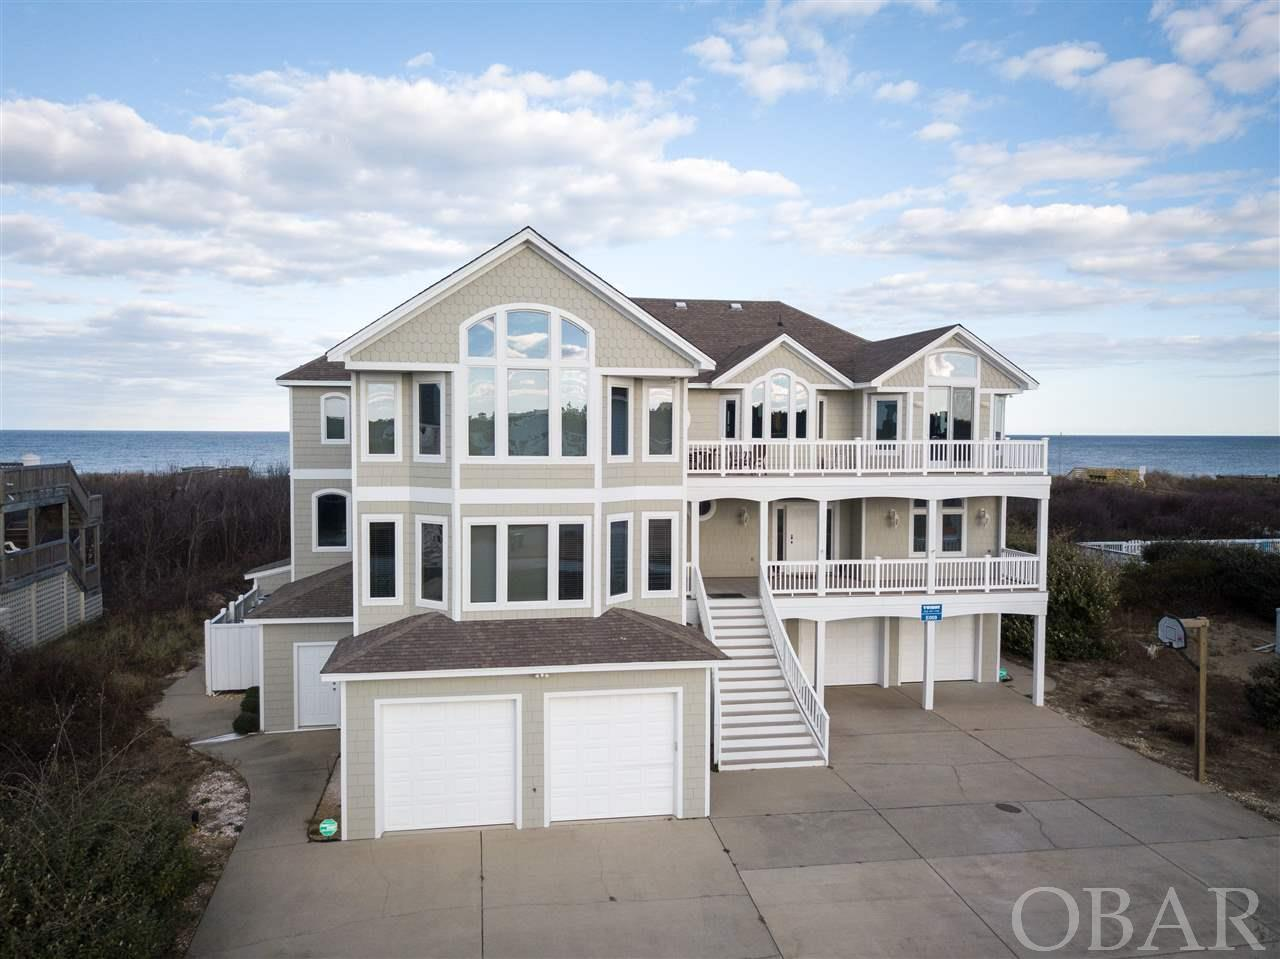 435 Kitsys Point Road, Corolla, NC 27927, 9 Bedrooms Bedrooms, ,9 BathroomsBathrooms,Residential,For sale,Kitsys Point Road,103313